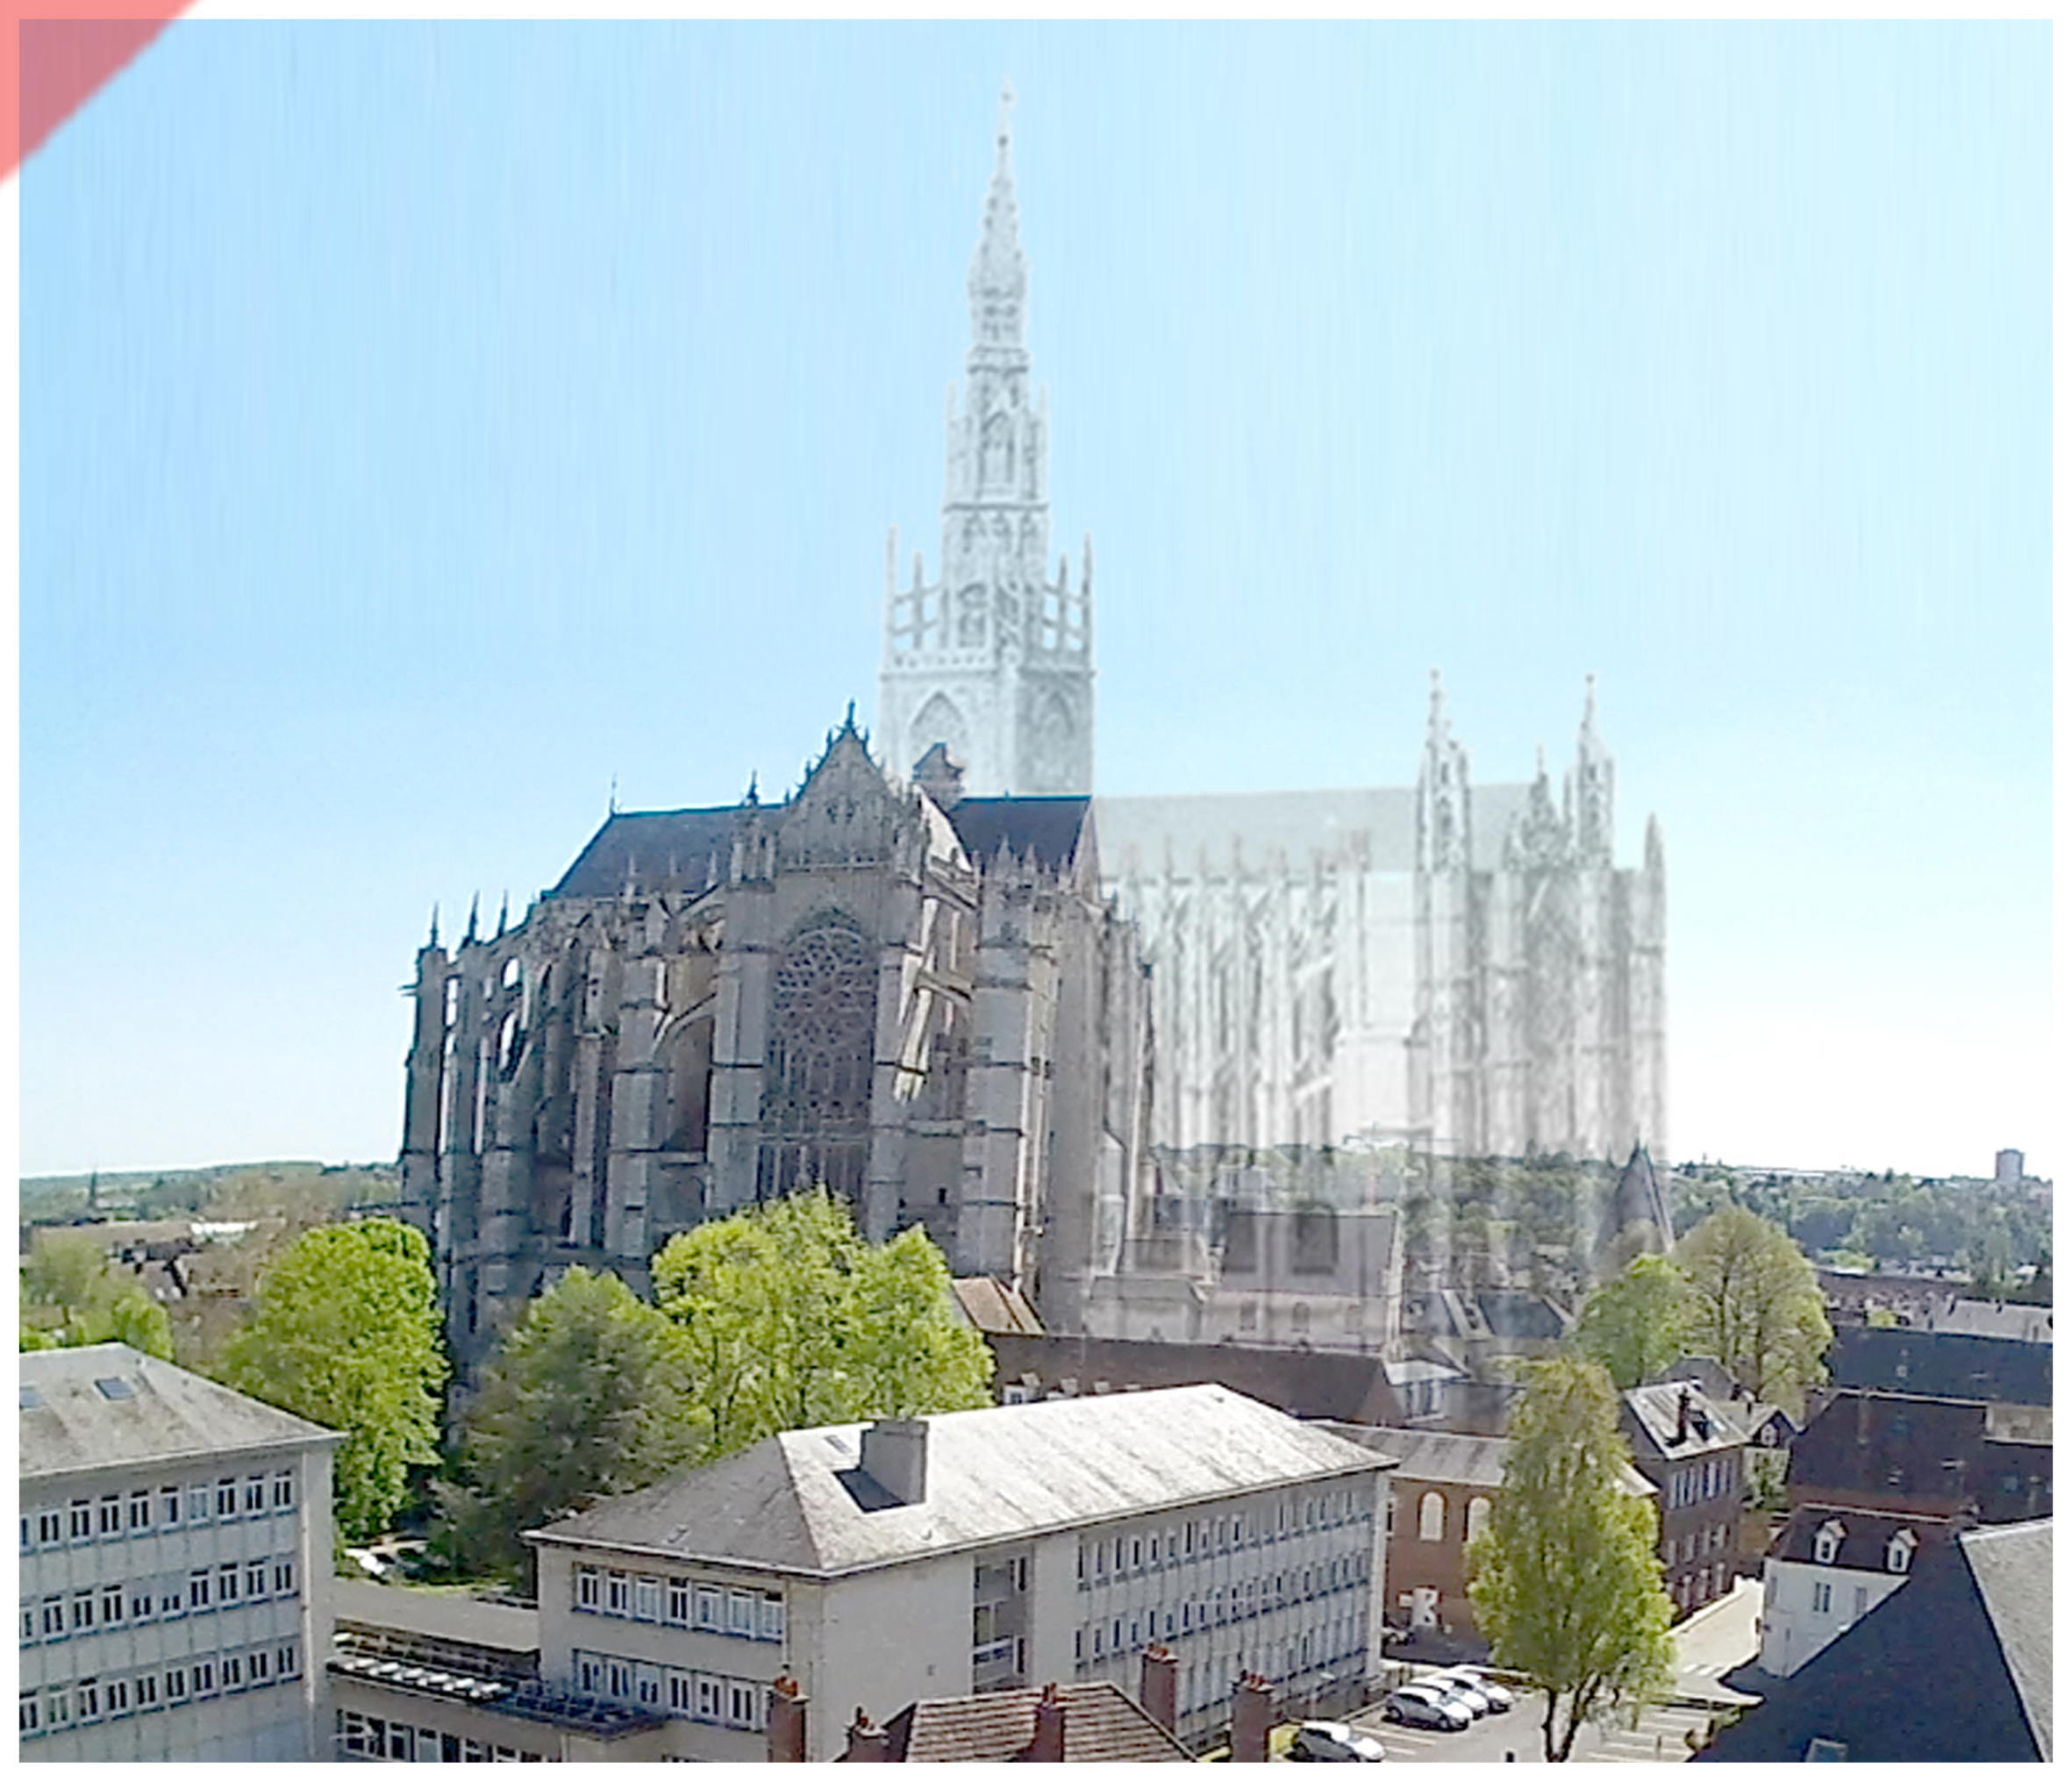 Cathédrale-Beauvais-vol-drone-façade-nord-façade-prévue-tour-1573-église-planifiée-Cathedrale-Beauvais-drone-nord-façade-geplante-façade-tower-1573-planned-church-kathedrale